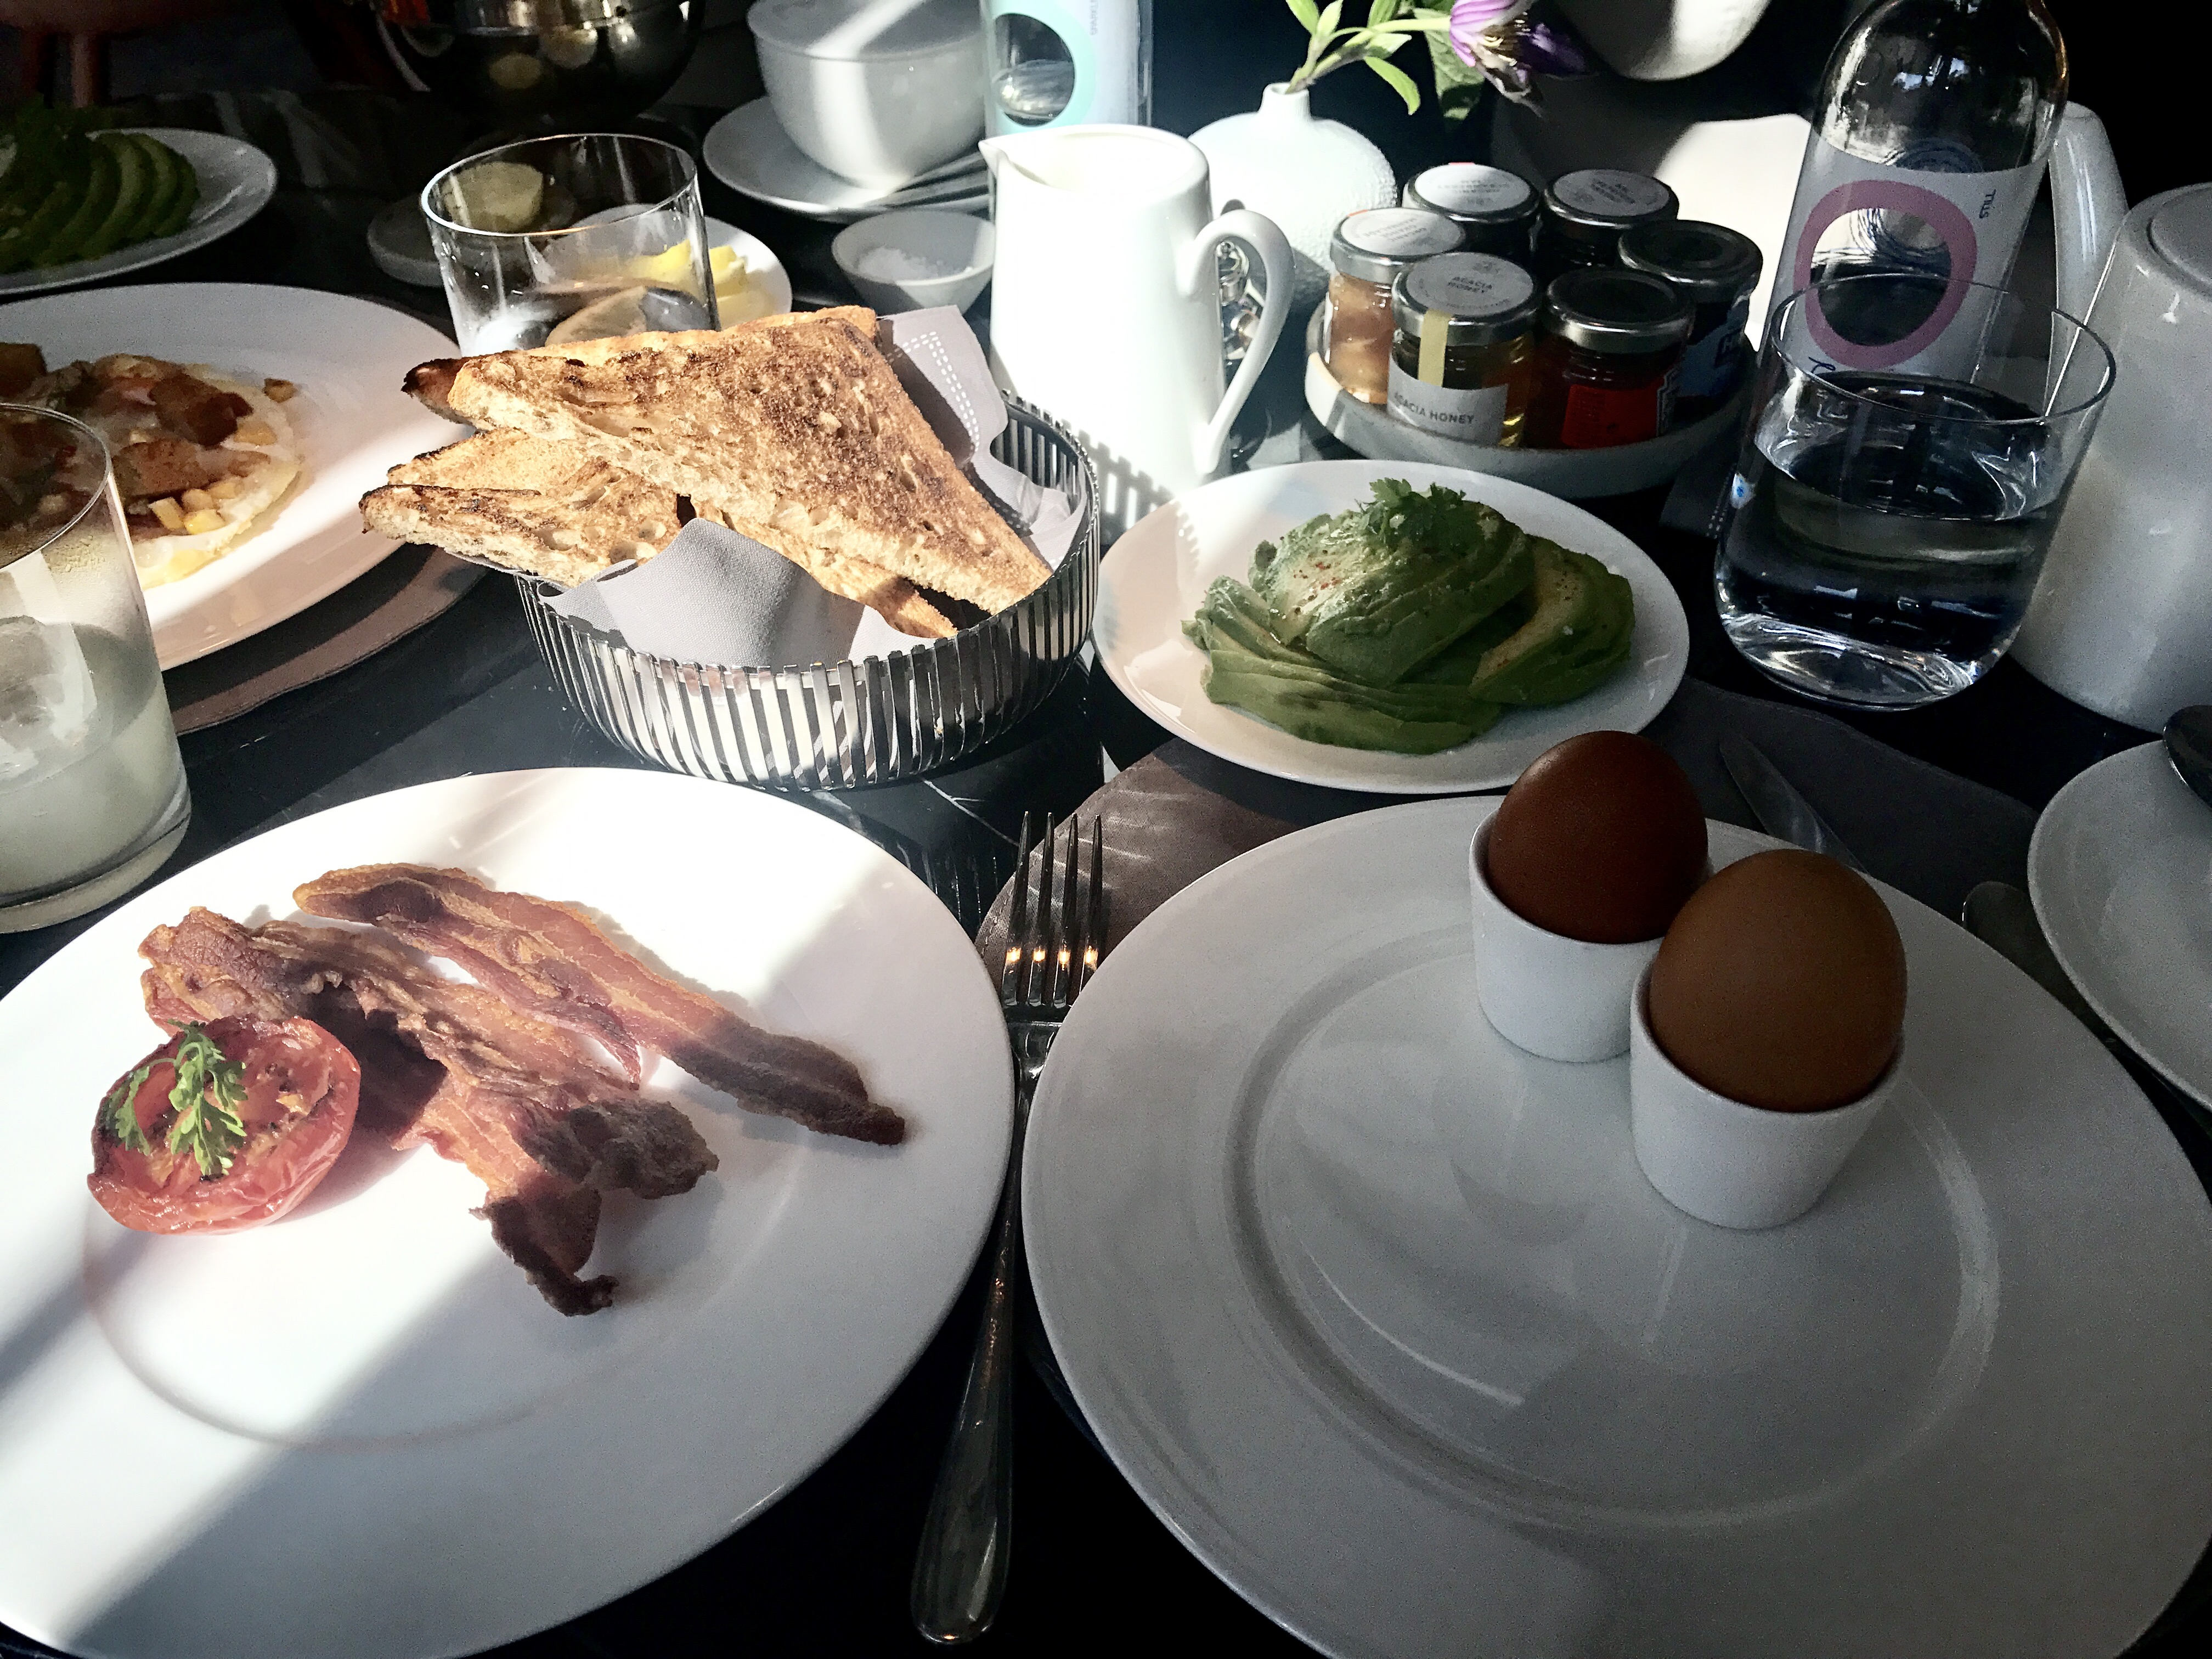 Breakfast at The Connaught hotel Jean Georges restaurant